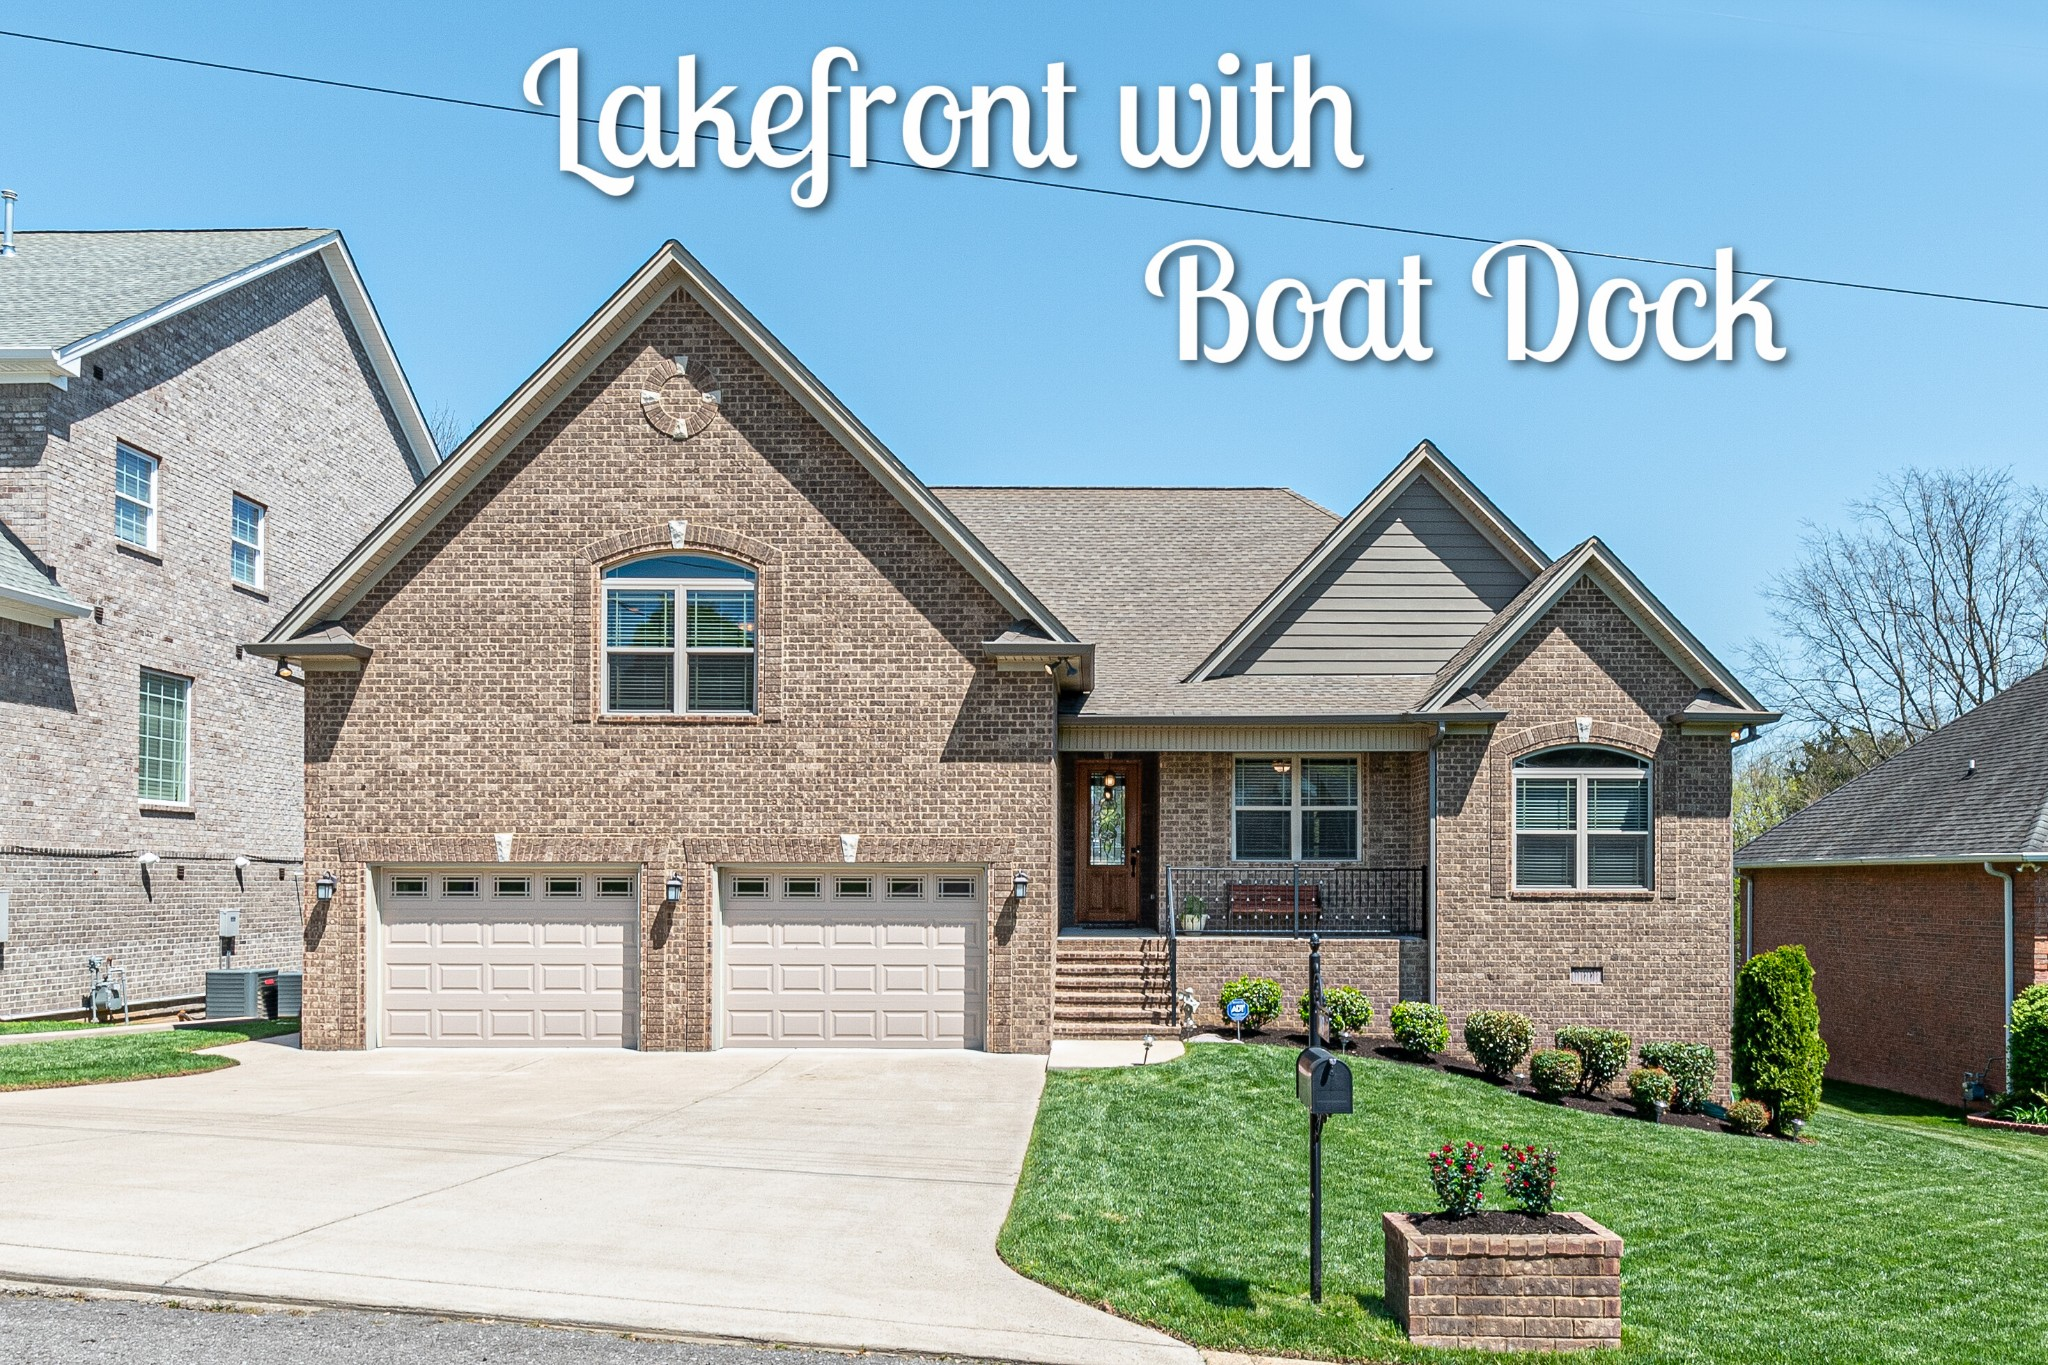 BOAT DOCK COVERED all metal 12X26 with electric, with 6,000 lb Hydro Boat lift that conveys,  Jet Ski permit/slot,  LAKE VIEW, HVAC Gas hybrid electric/heat (2 units), gas range, gas on deck for grill, Tankless gas water heater, solid hardwood floors, solid cherry cabinets,stone fireplace, Granite, Front entry large 2 car garage, bonus 3rd attached garage in the back that's heated and cooled, heated and cooled walk in basement crawl space/storage. Open House Sun. April 18th 2-6pm.